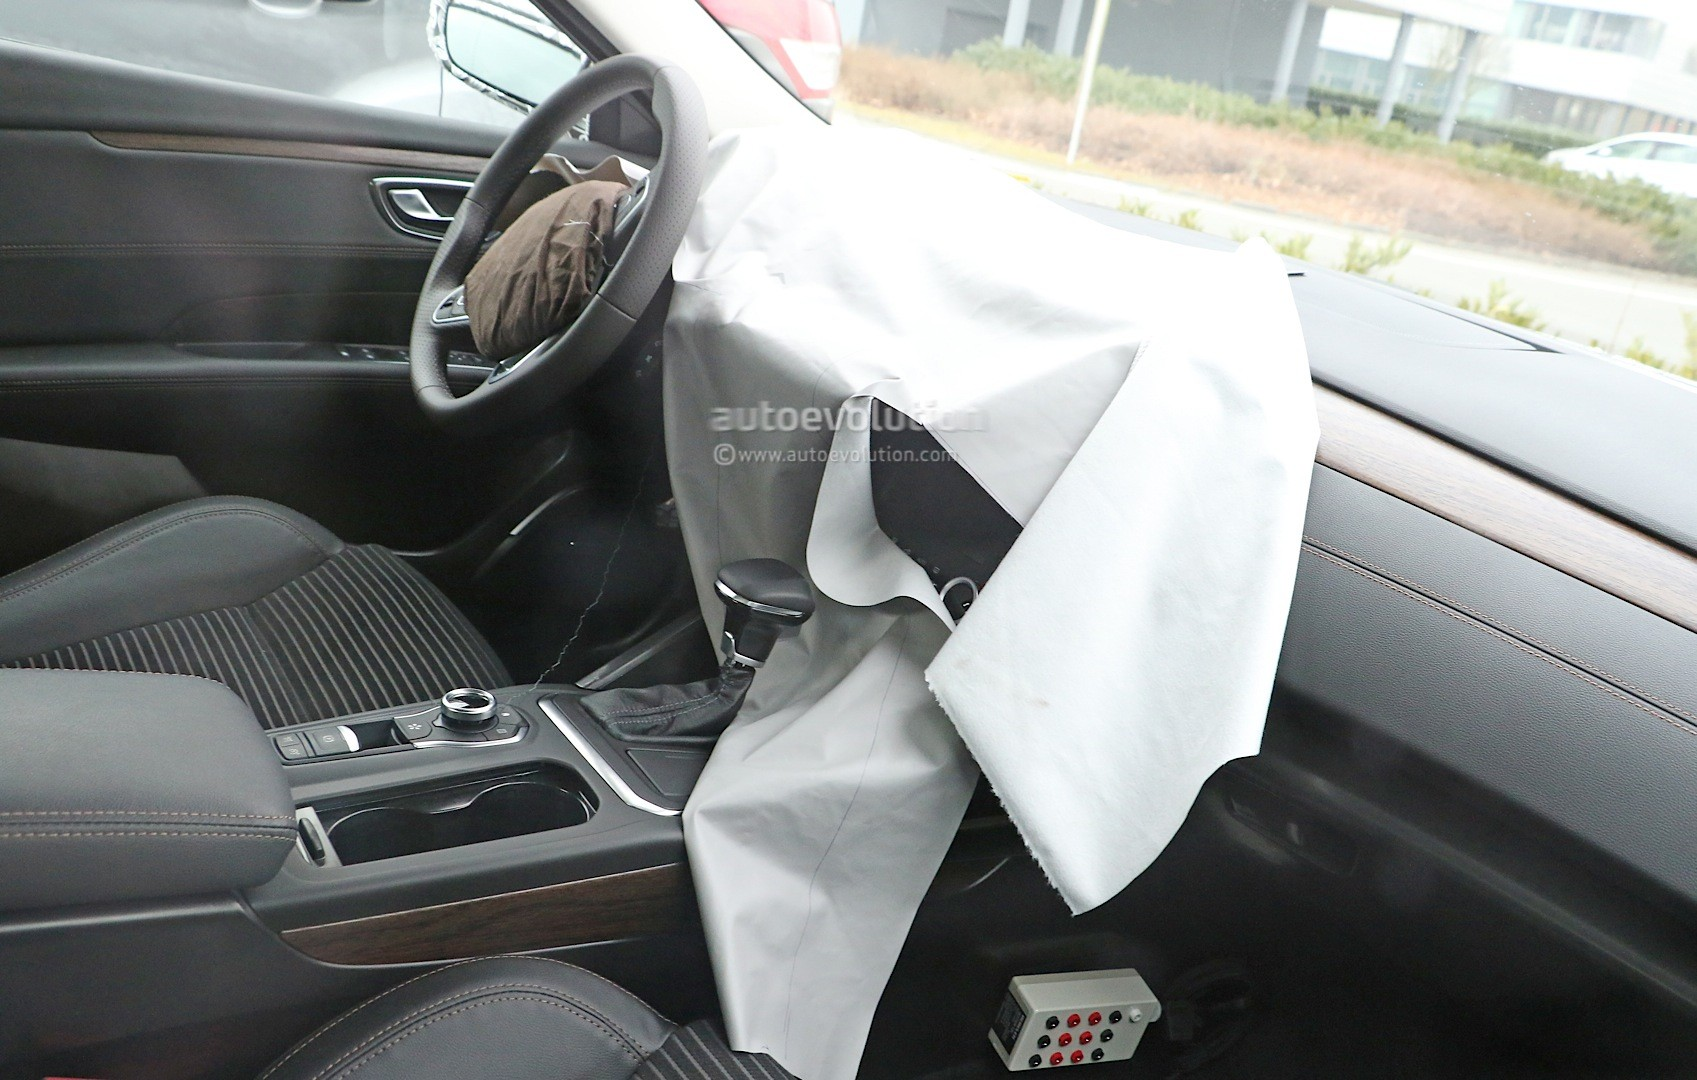 Spyshots All New Renault Laguna Interior Spied For The